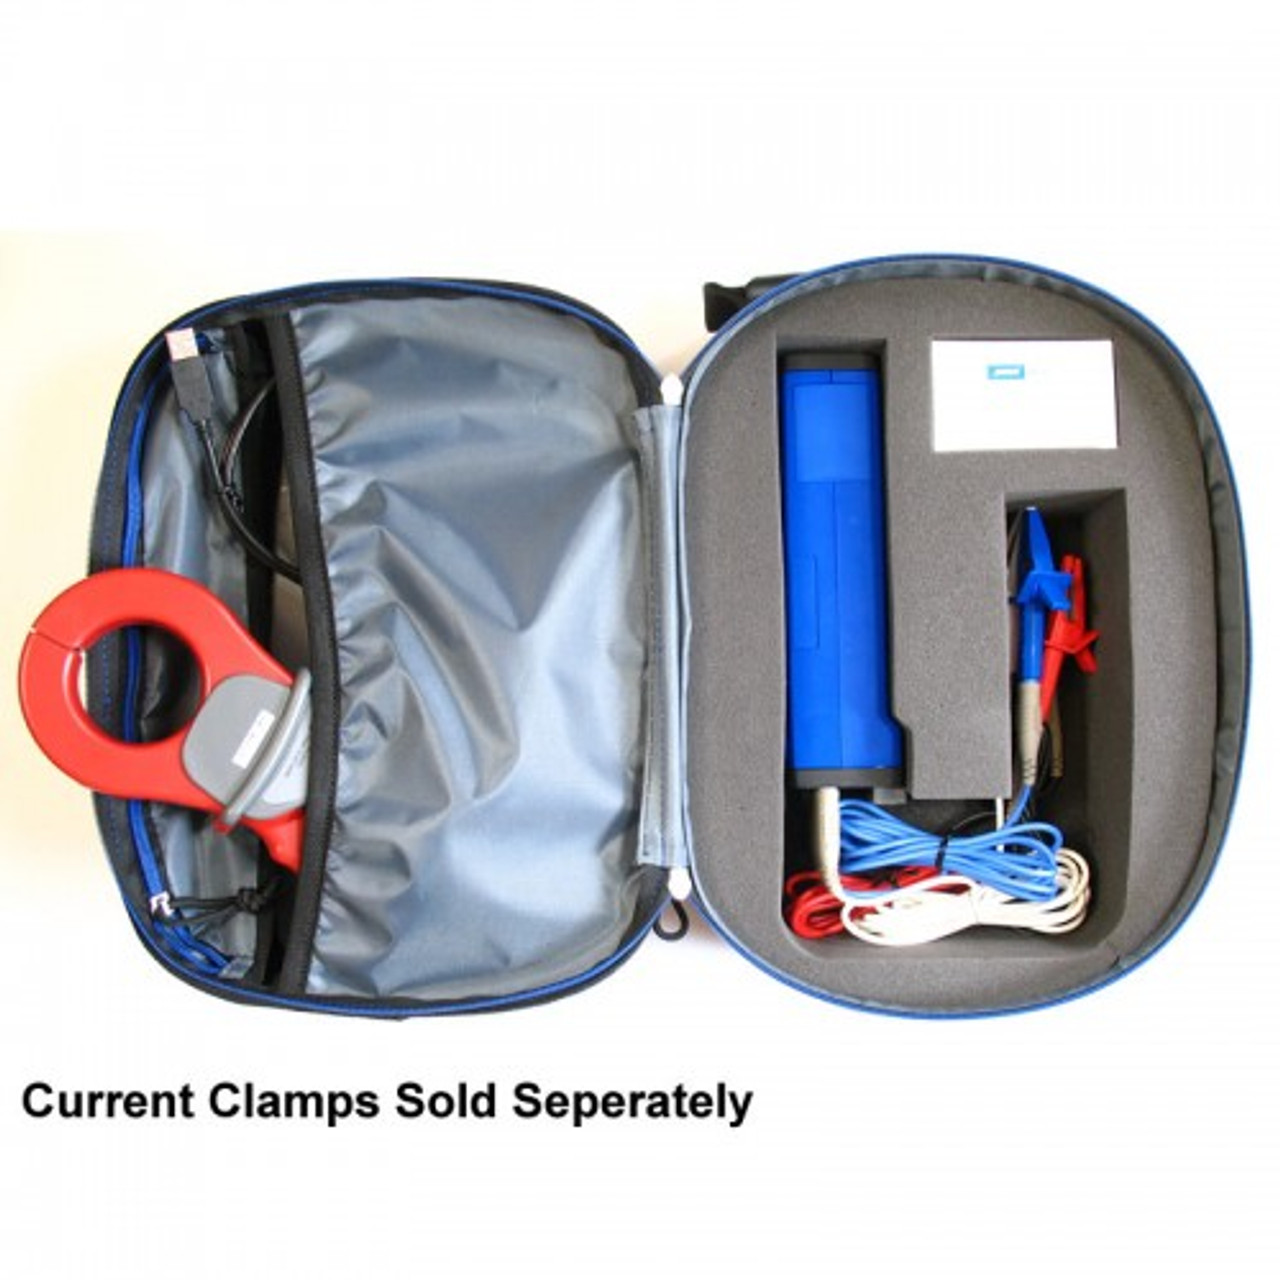 Dent ElitePro XC  Included Accessories  High voltage leads with fused croc clips, Unterminated leads, Elog software, USB cable, Soft carry case, Manuals on CD.